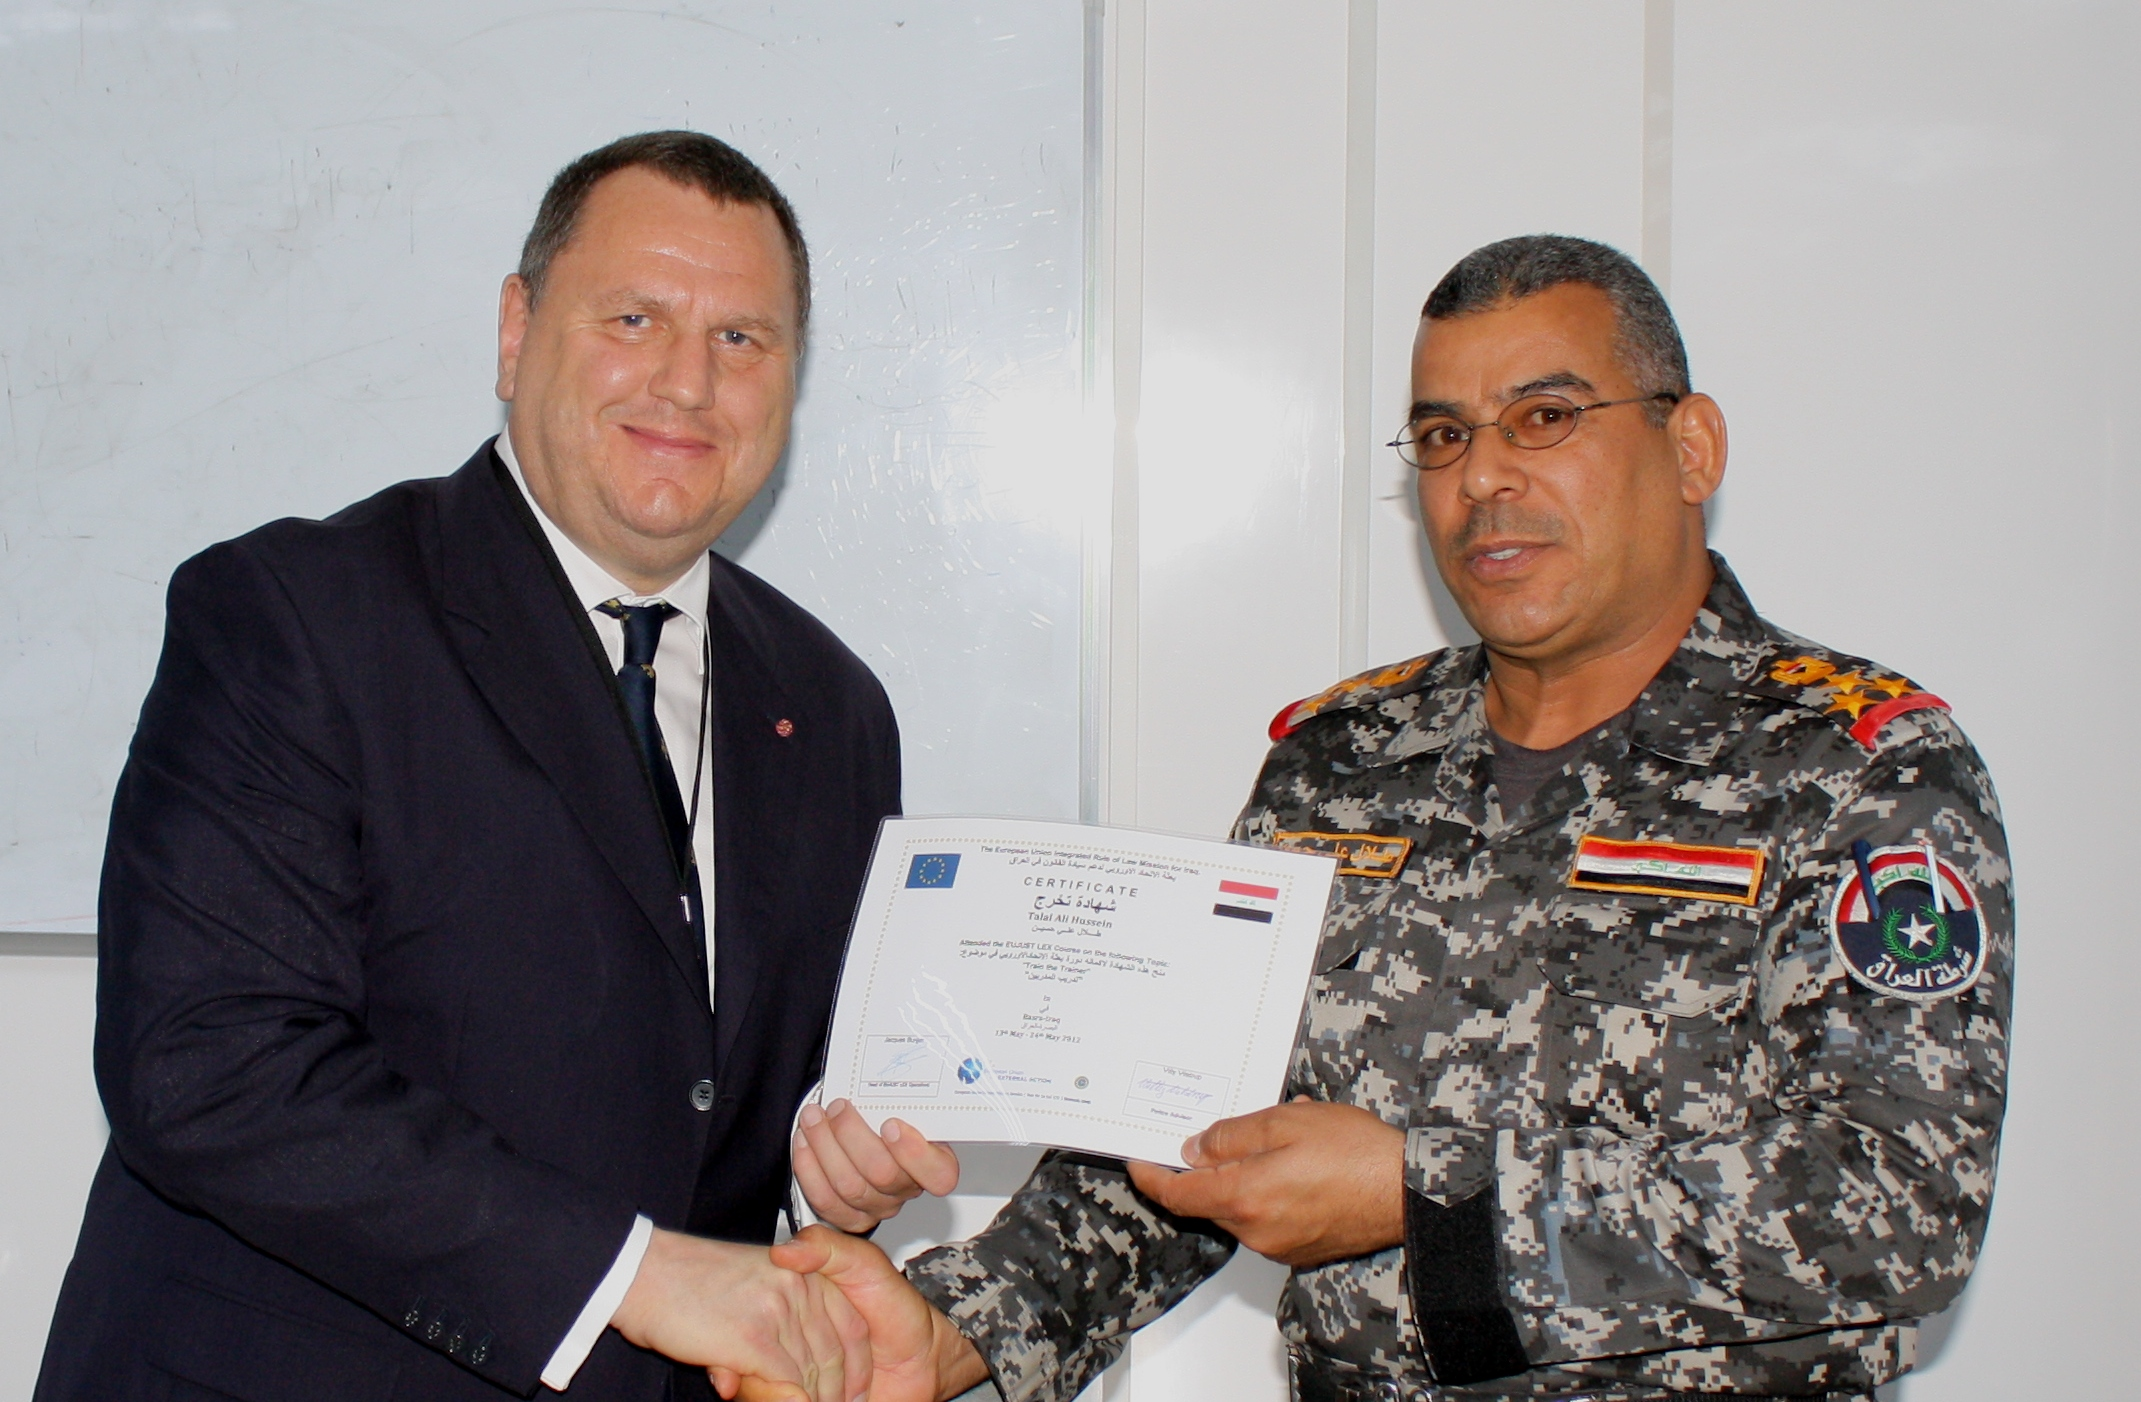 Police Team Leader Robert Lamburne and the Dean of the Shaiba Police College Brigadier General Talal